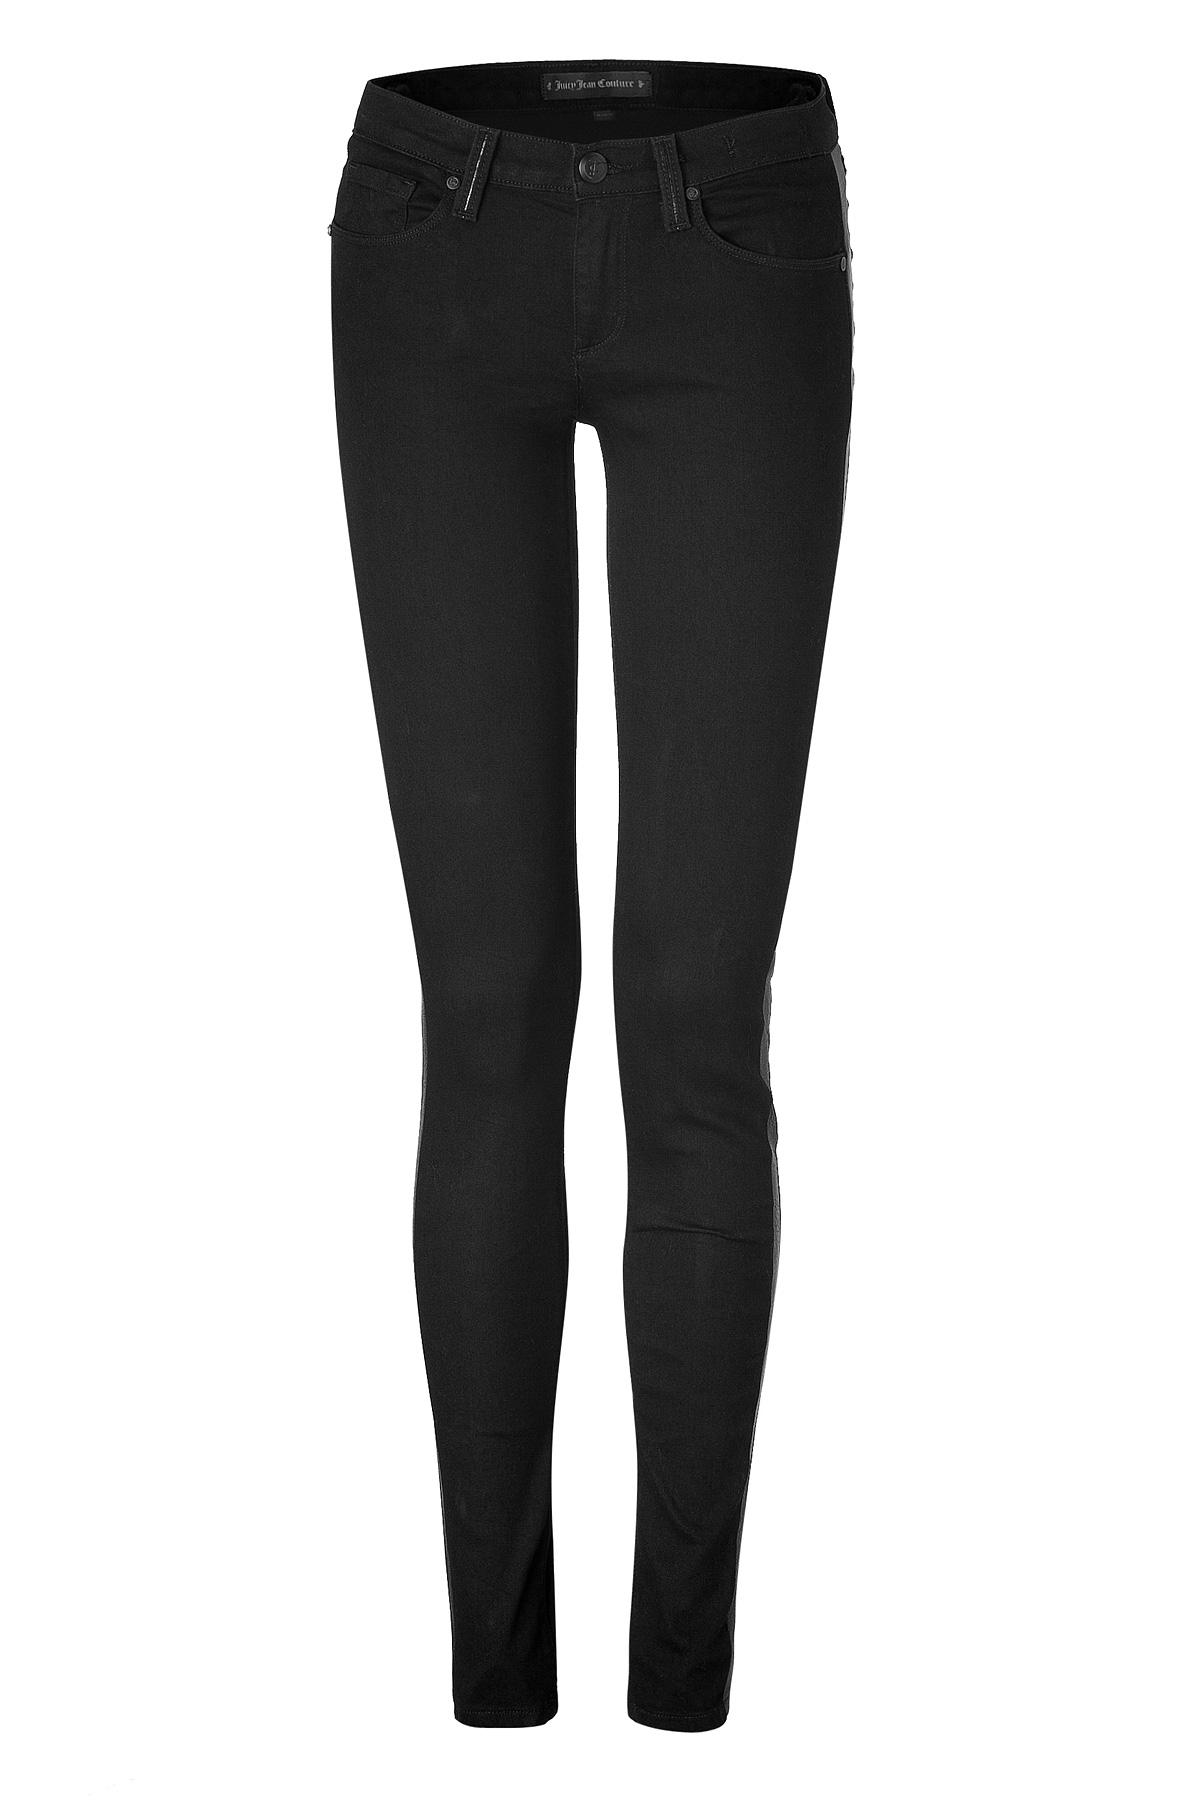 Juicy Couture Black Leather Inset Lila Skinny Jeans In